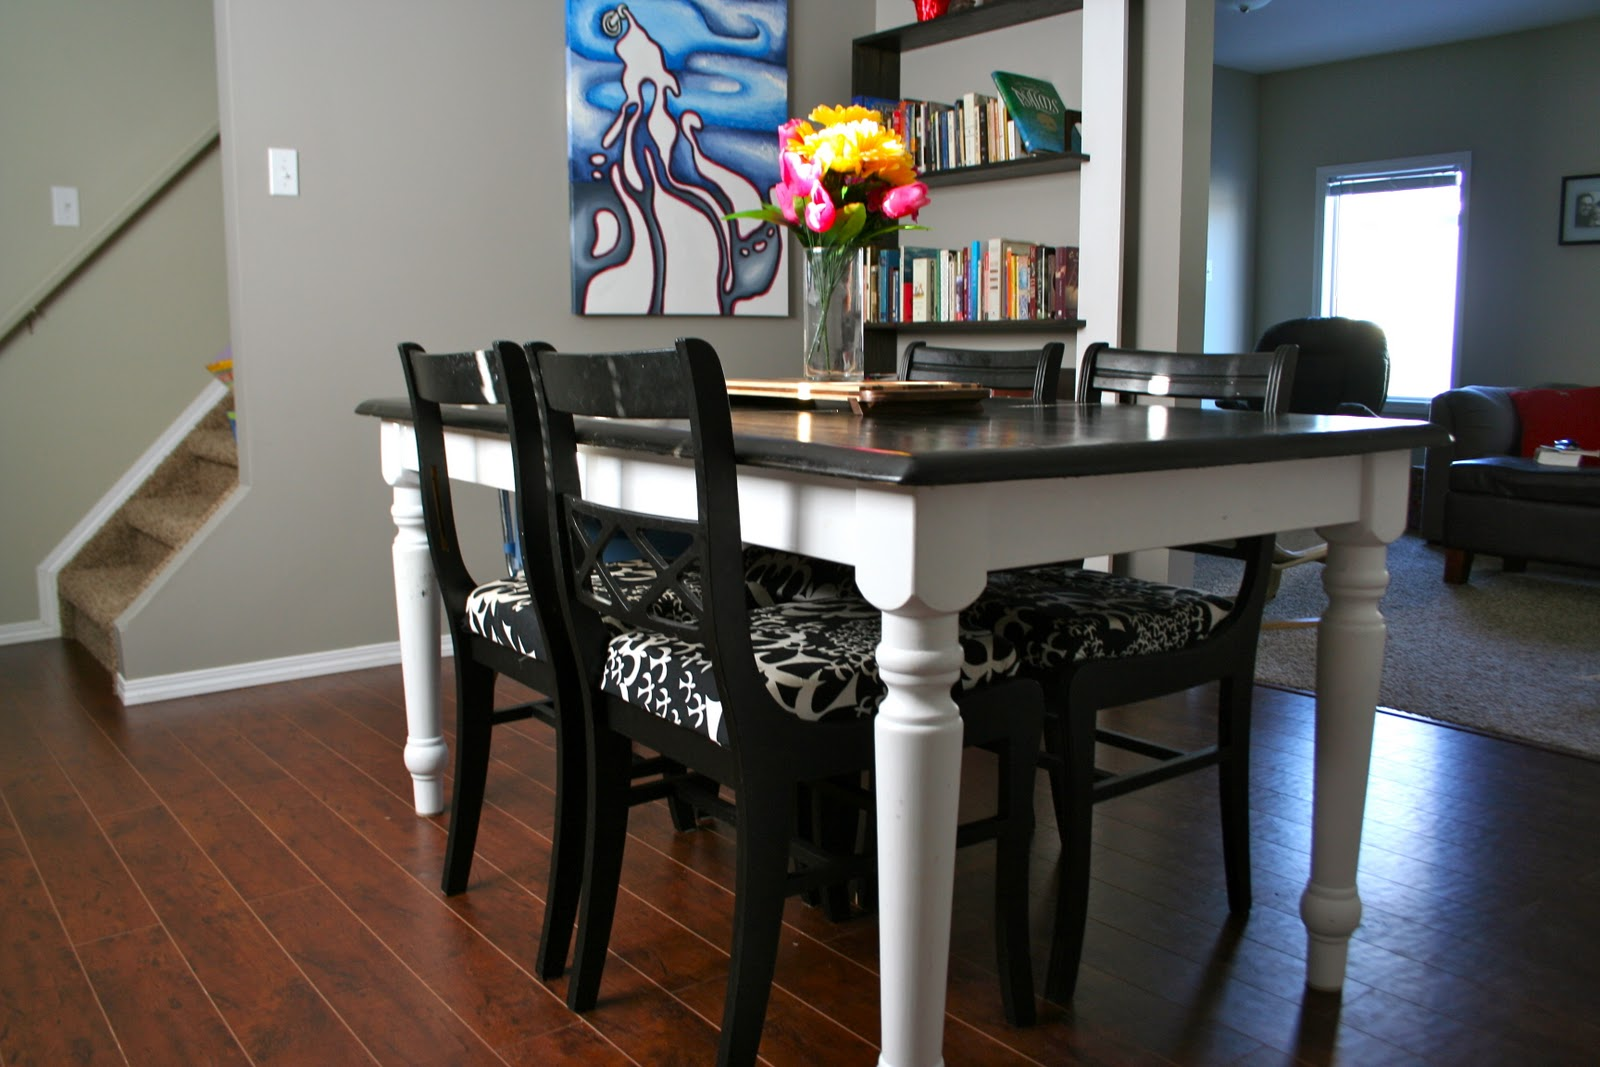 dining room table refinishing clarity photographs   TOP 20 Refinishing bedroom furniture black 2018   Interior ...